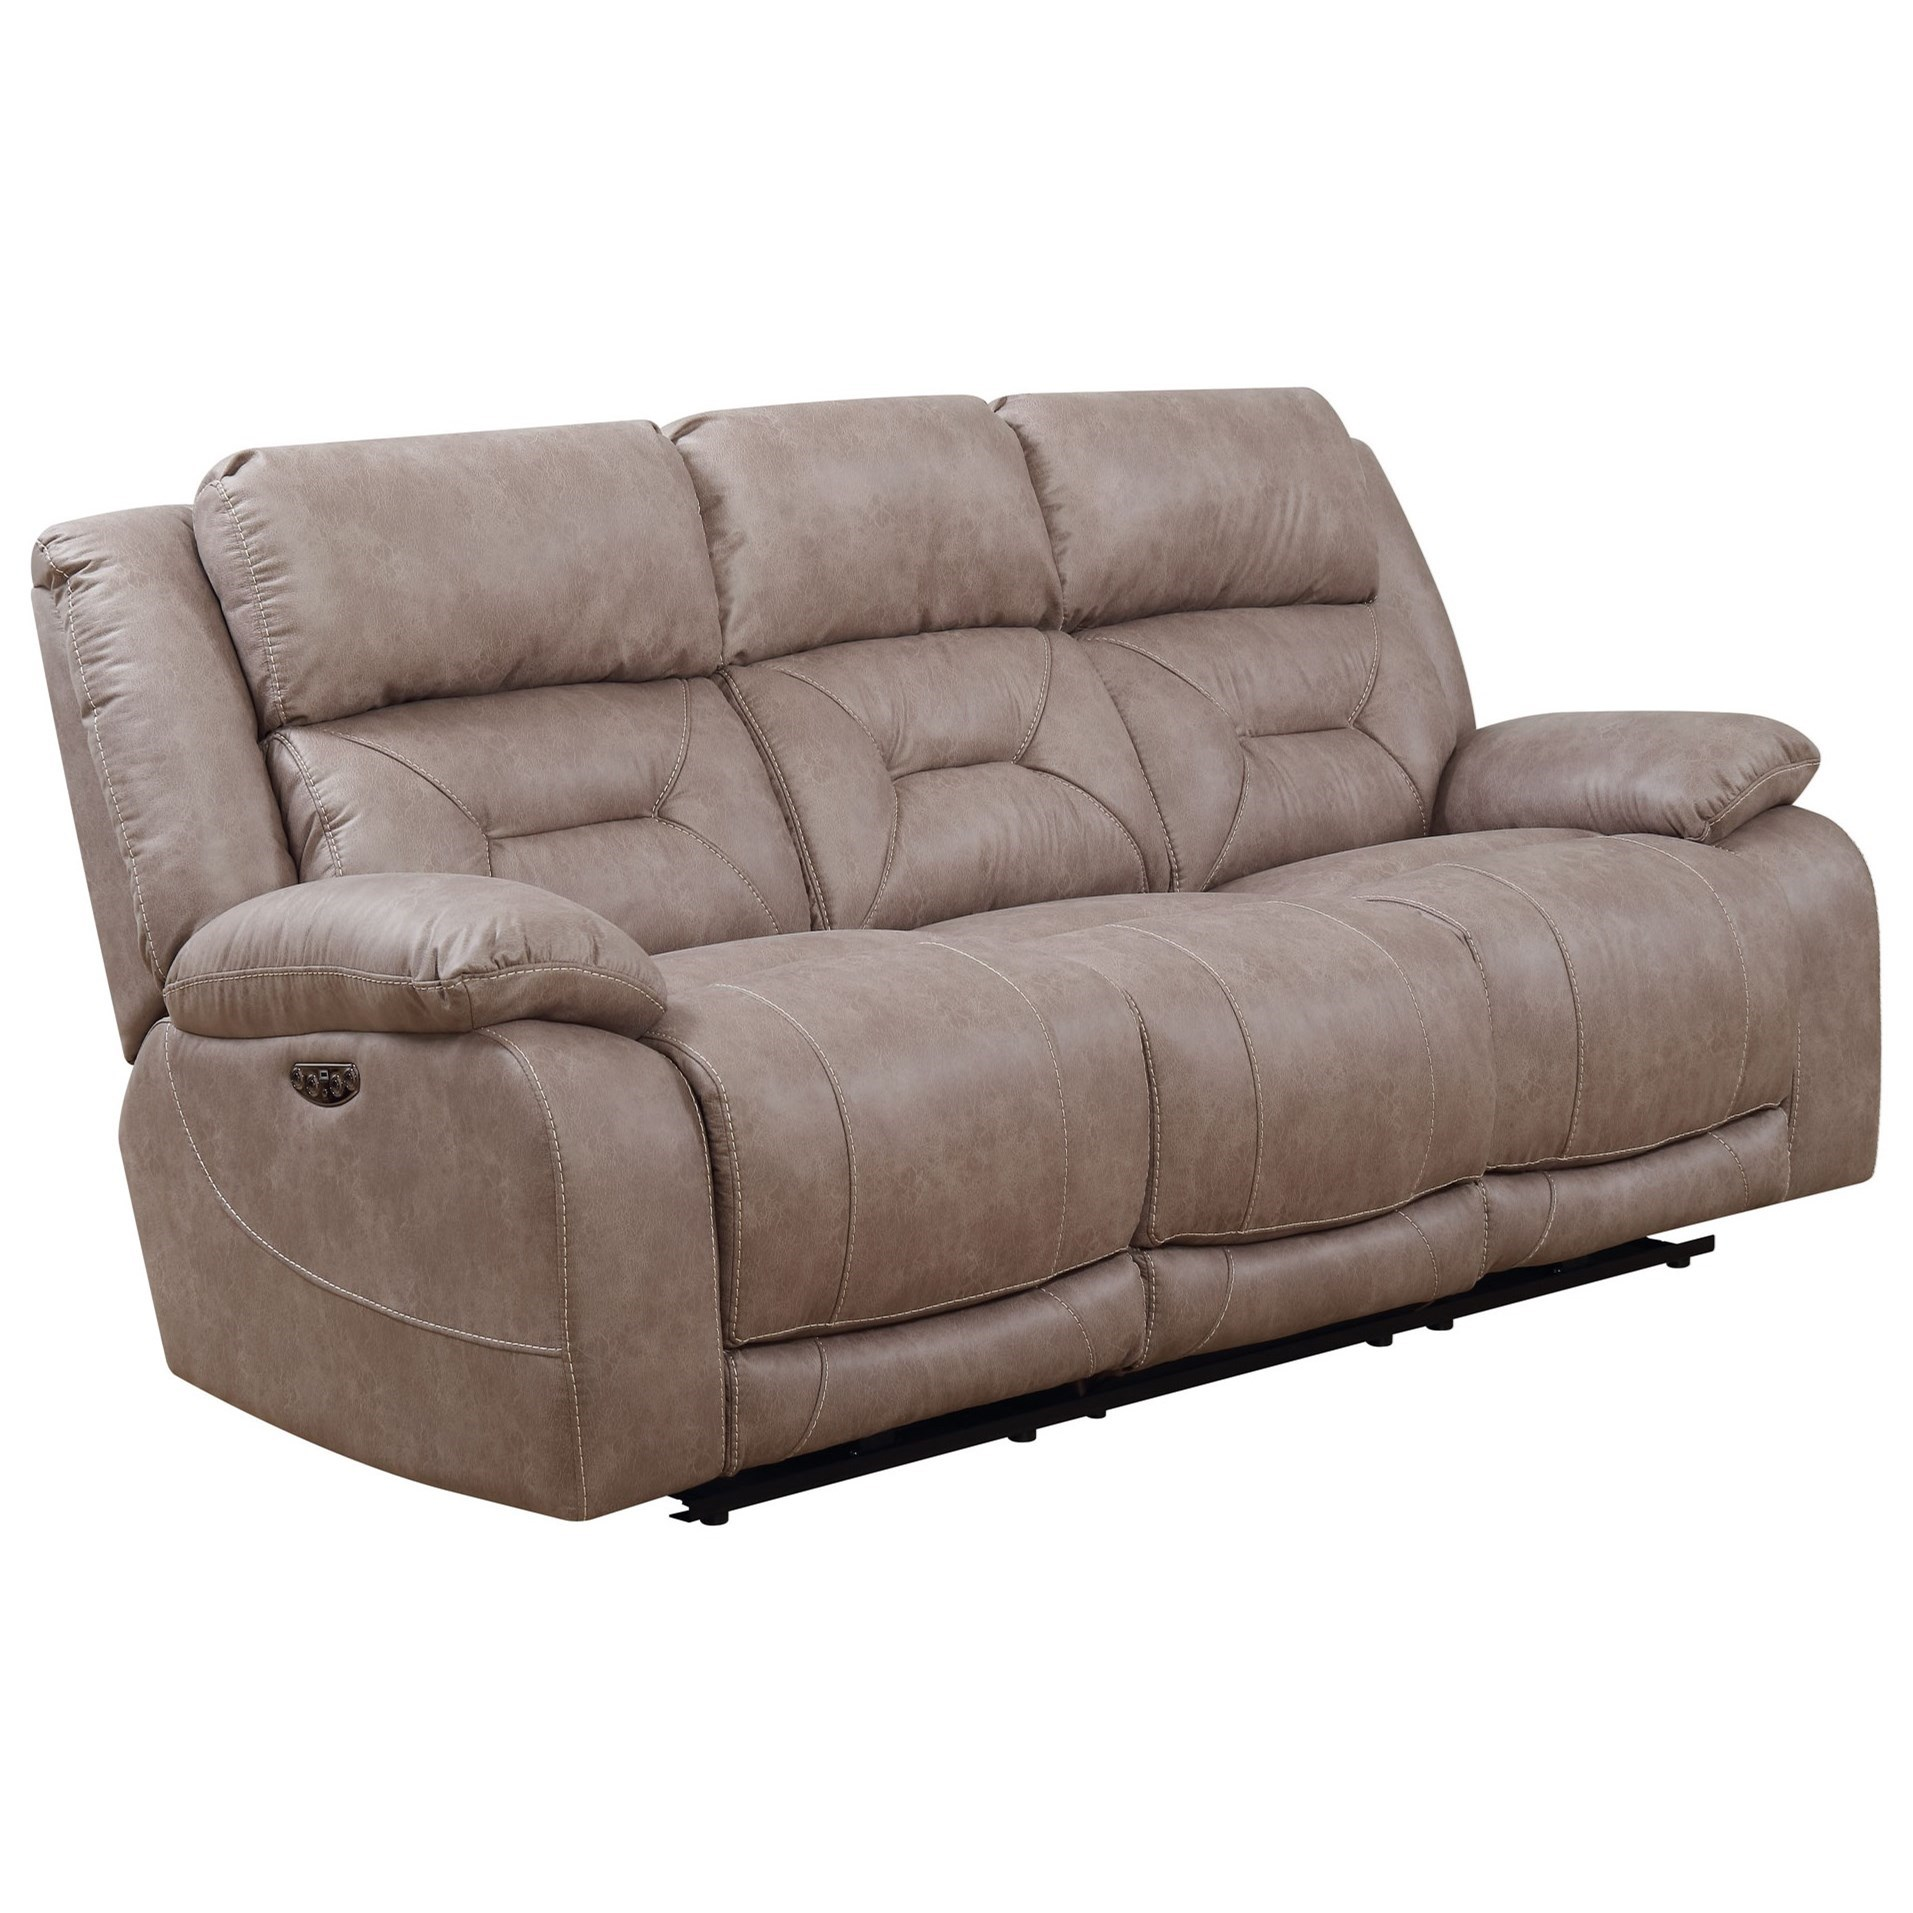 Aria Reclining Sofa by Star at EFO Furniture Outlet